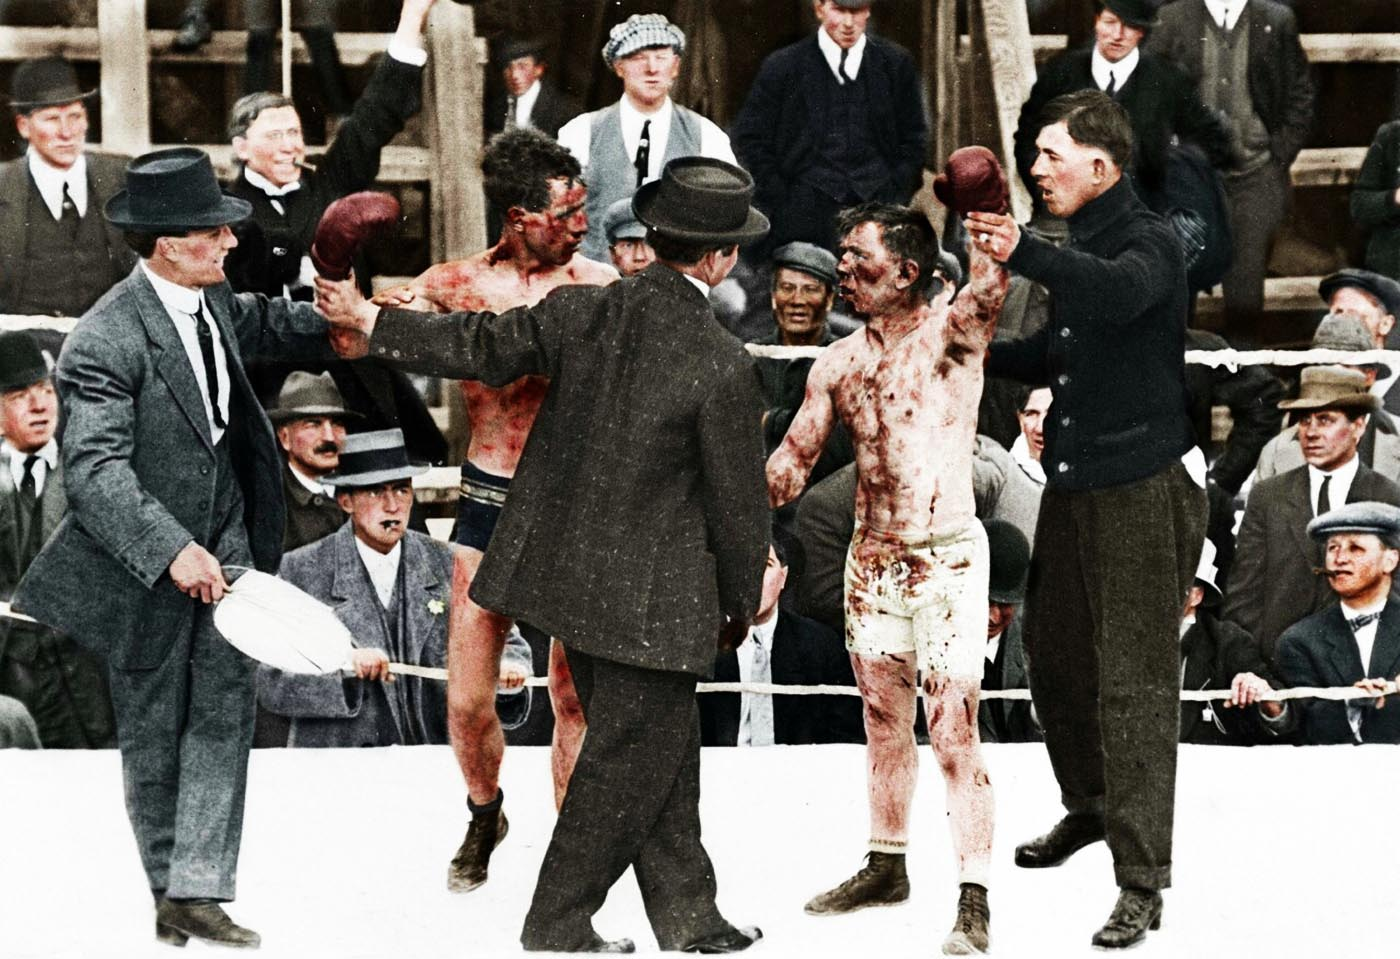 Ray Campbell vs Dick Hyland (1913). Ray Campbell is listed as the official winner of this fight. It appears that Campbell is the fighter on the left and Hyland is on the right.